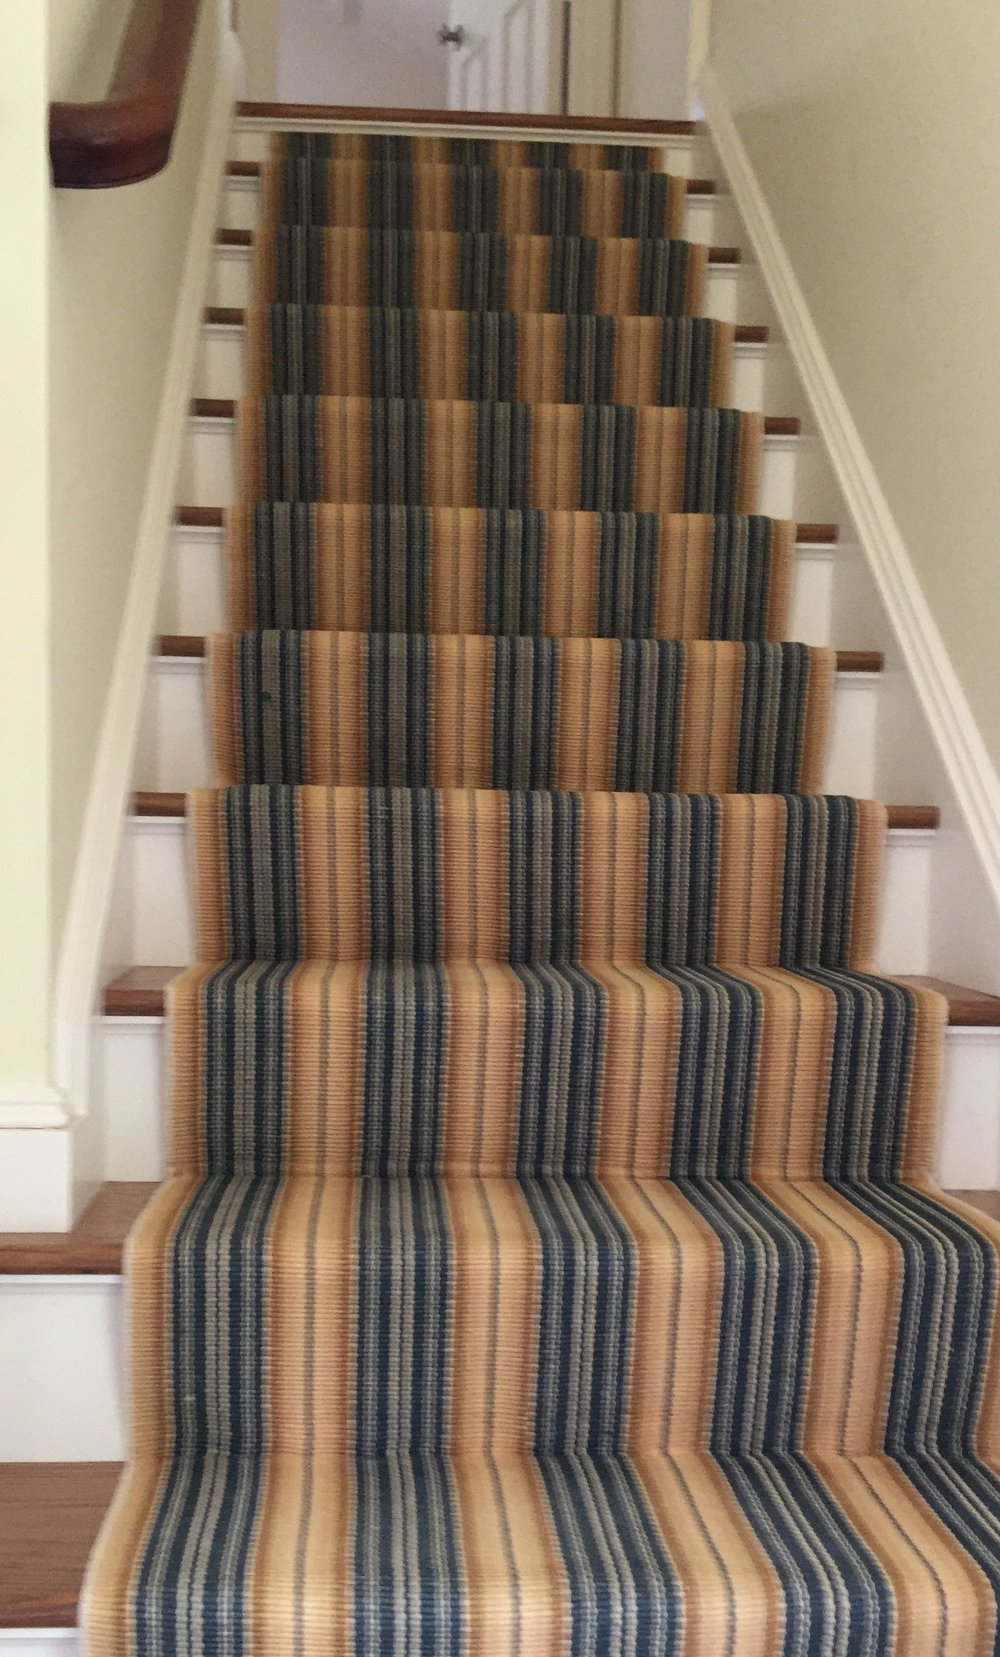 This cotton runner from  Dash and Albert  was a great way to liven up the stairwell.  We ordered 2 8' runners and had our installer run them up the stairs ending just below the top landing.